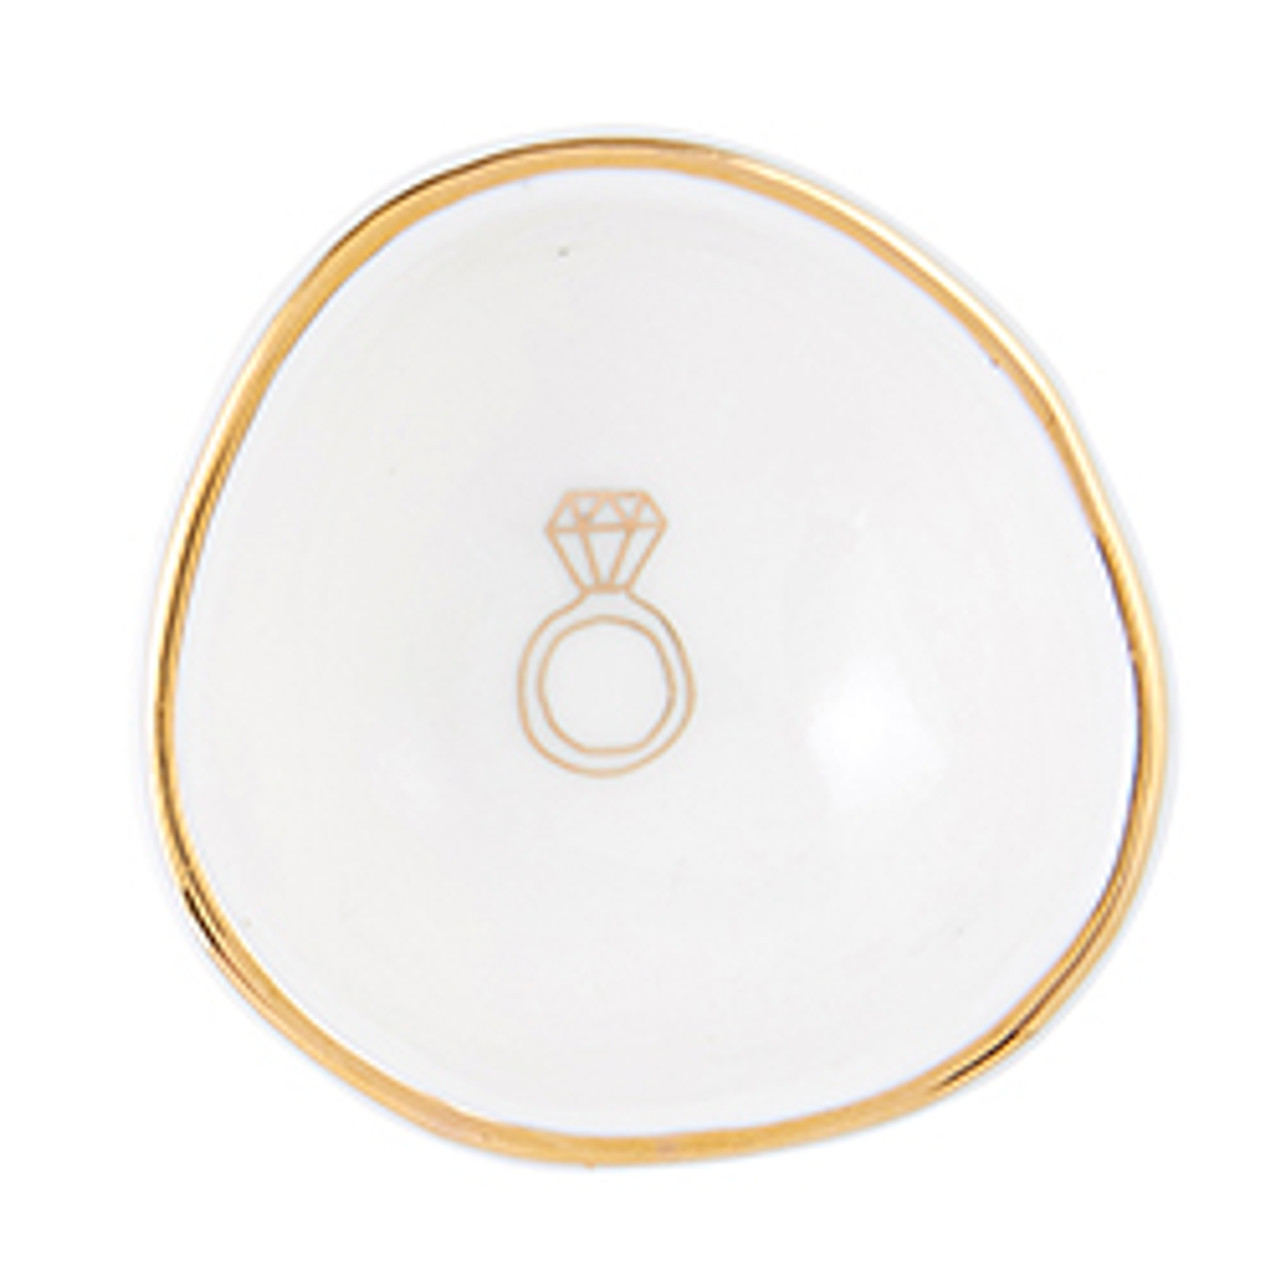 Display your rings in style with our small Ring Dishes. Hand made ceramic bowls provide a safe place to store your ring.